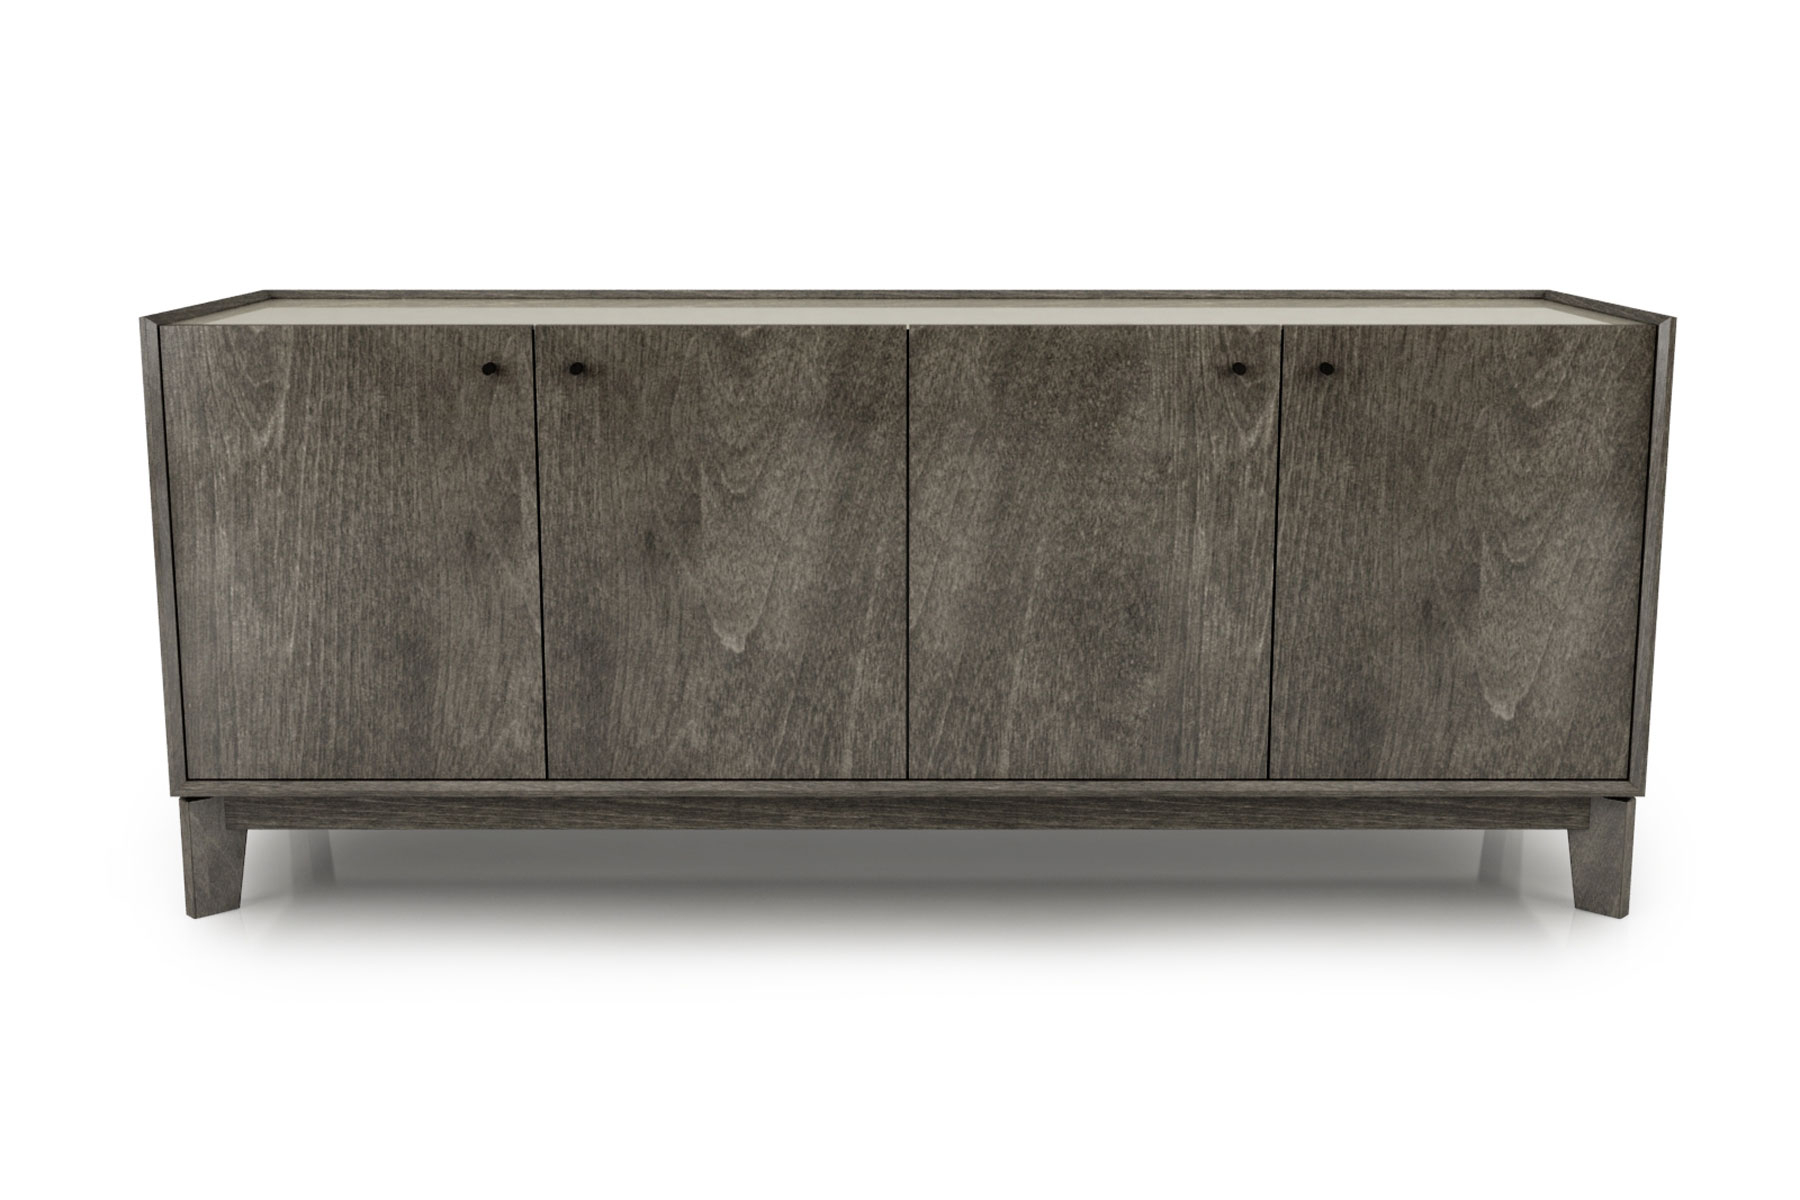 Fly Buffet | Modern Buffets | Dining Room Furniture | Sklar with regard to Modern Espresso Storage Buffets (Image 9 of 30)